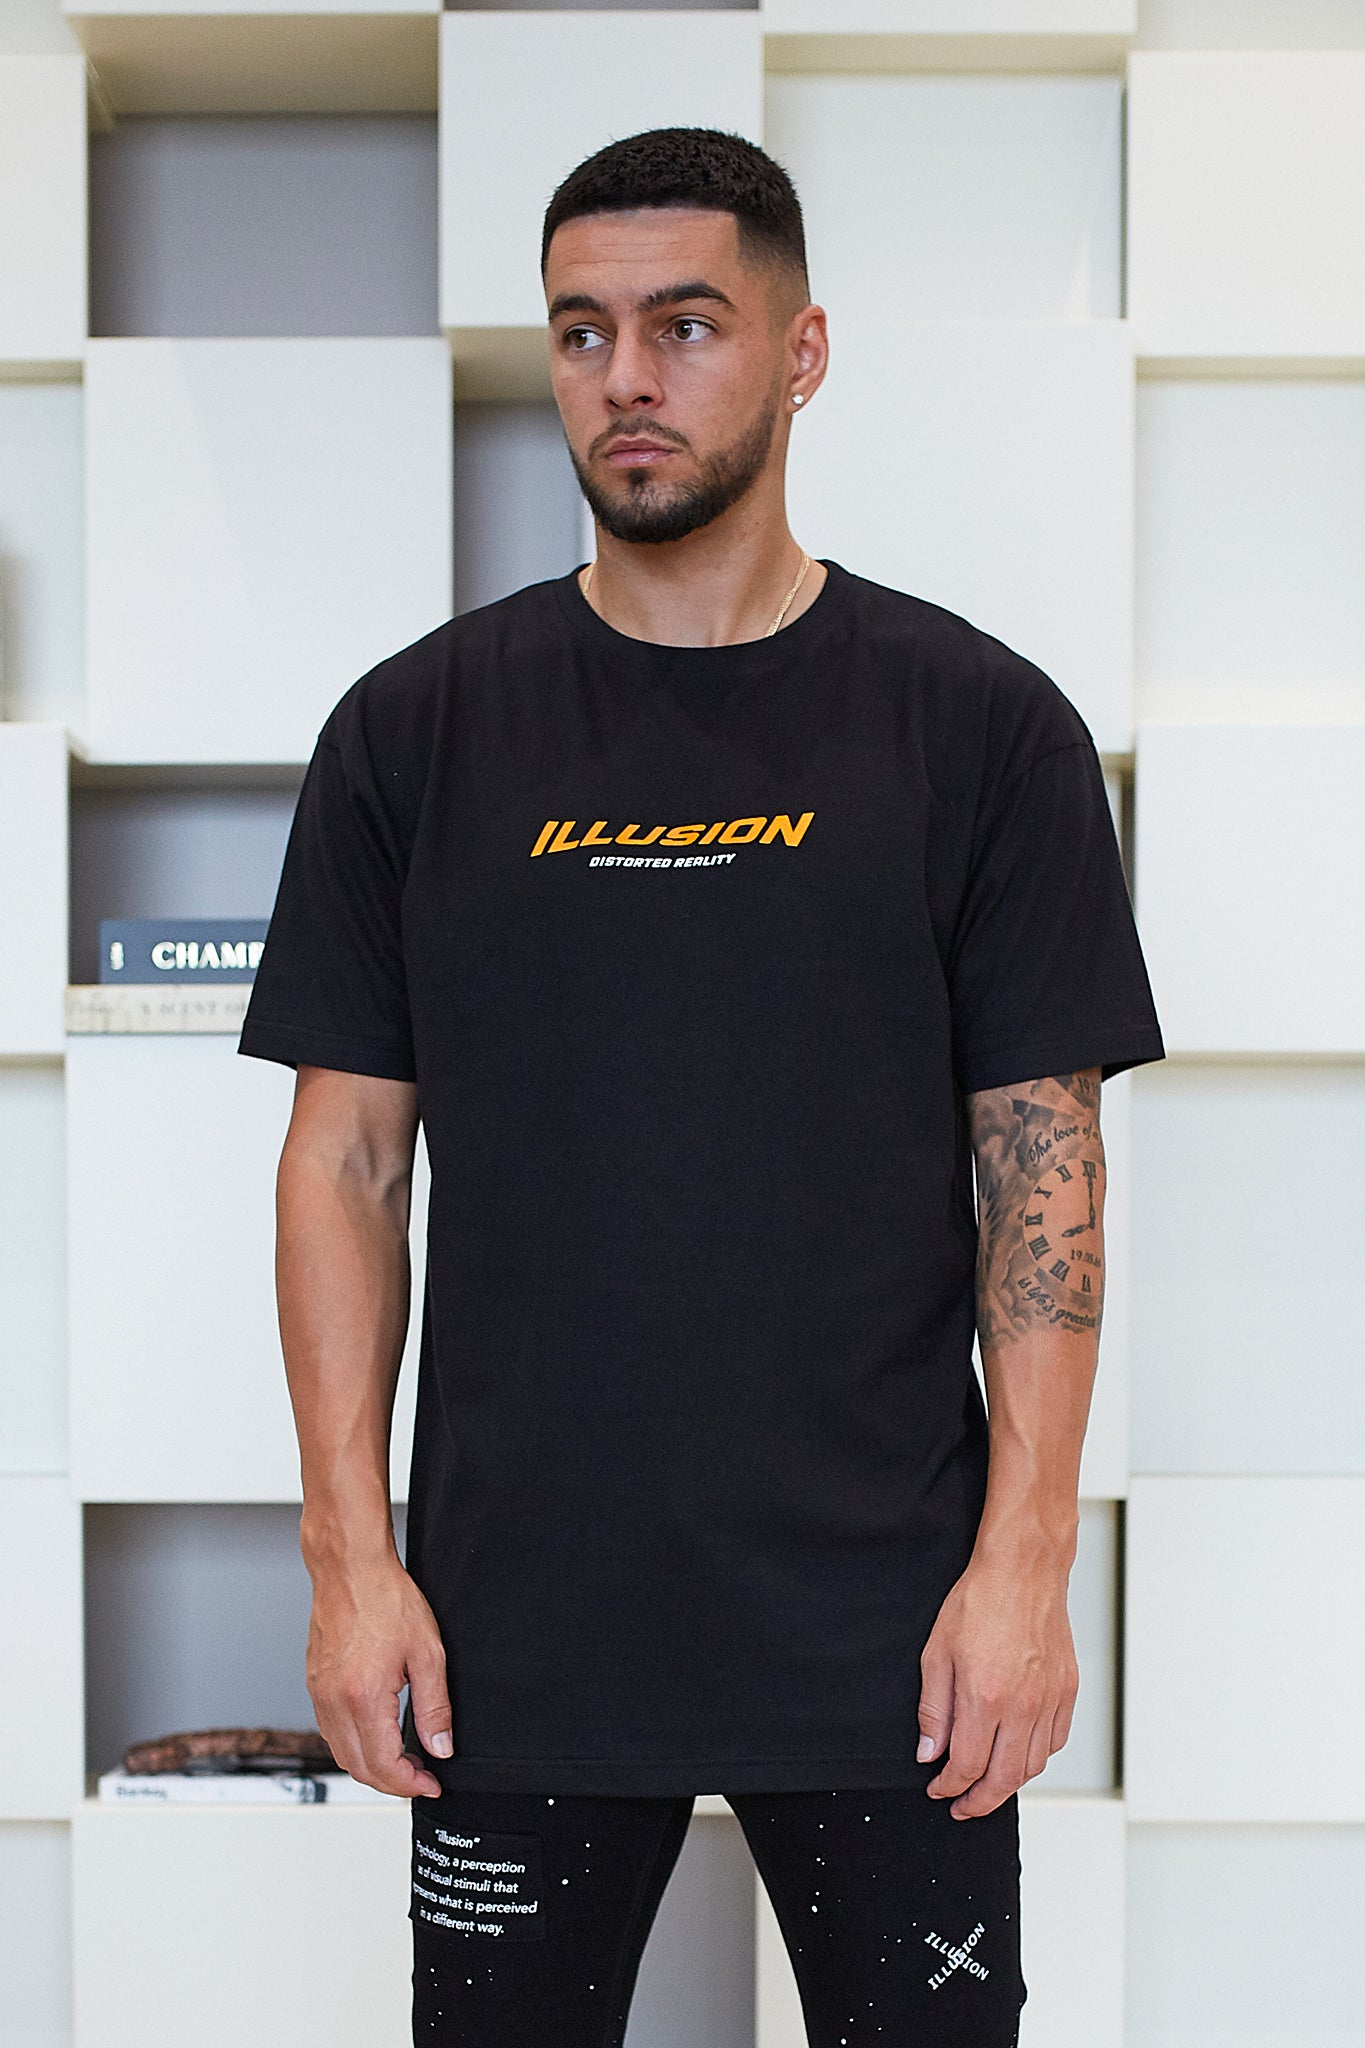 BLACK DISTORTED REALITY T-SHIRT - Illusion Attire